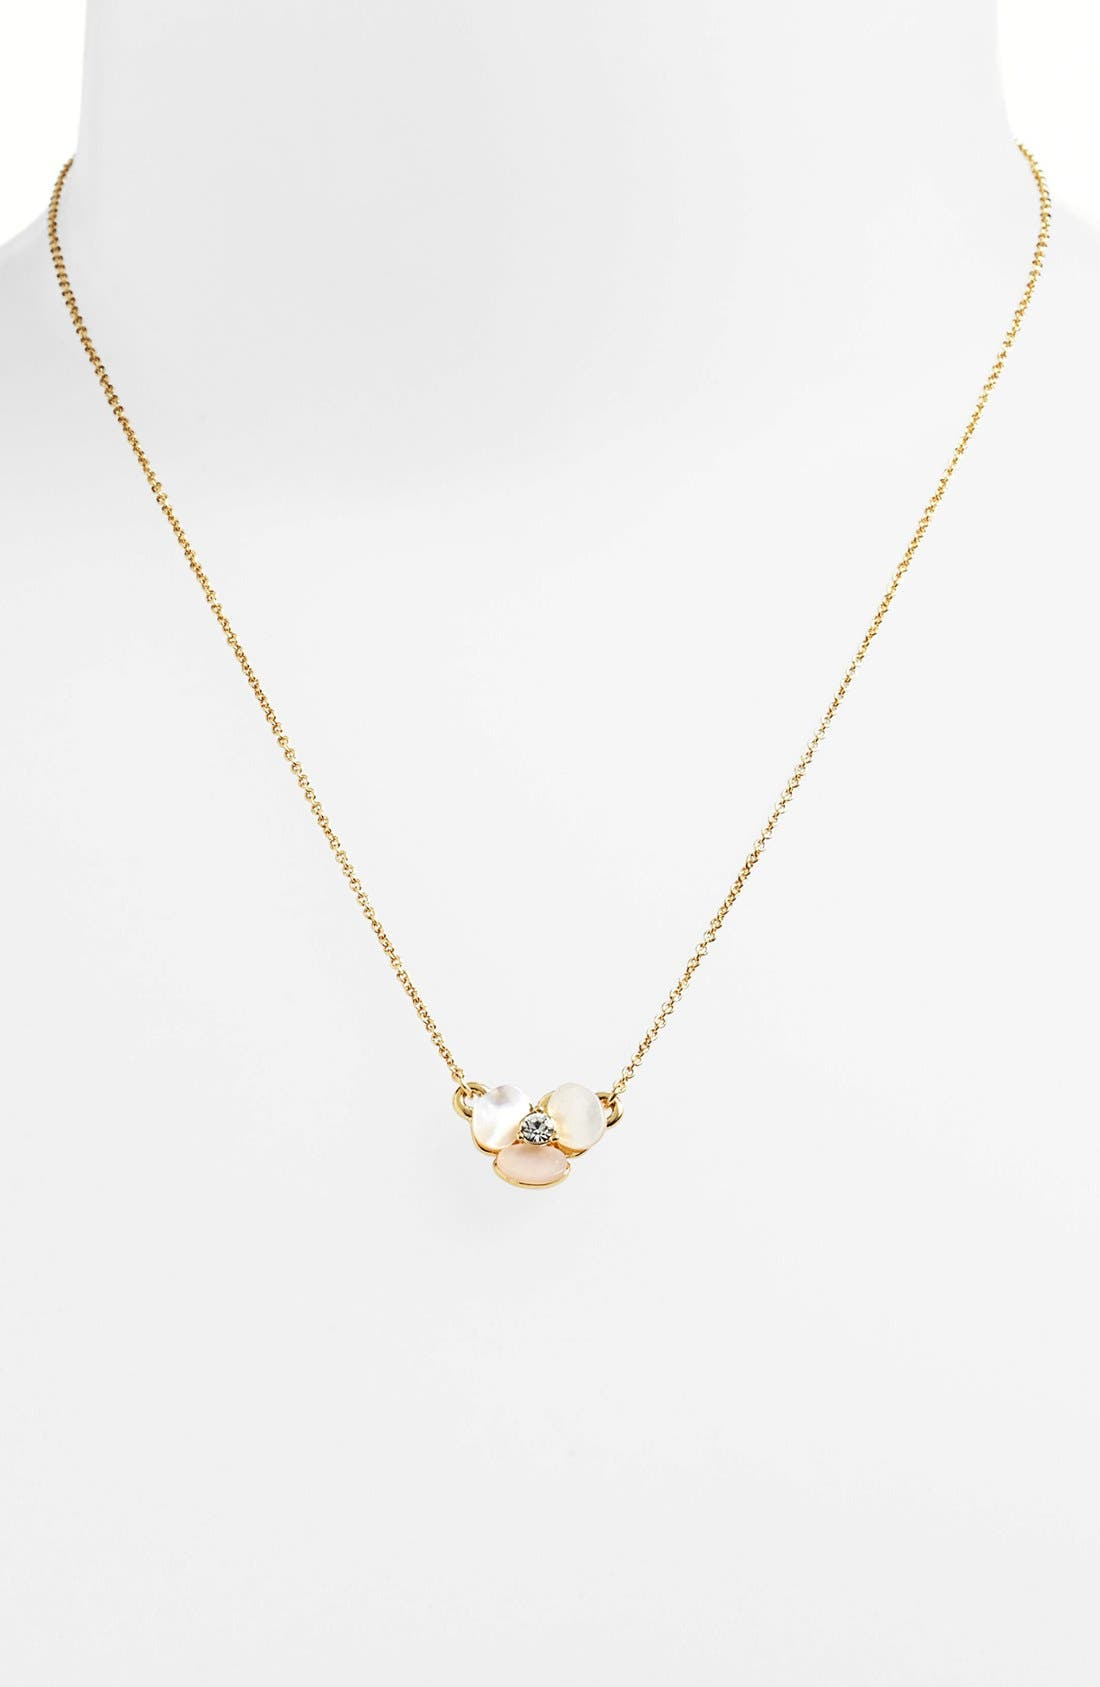 kate spade new york 'disco pansy' pendant necklace